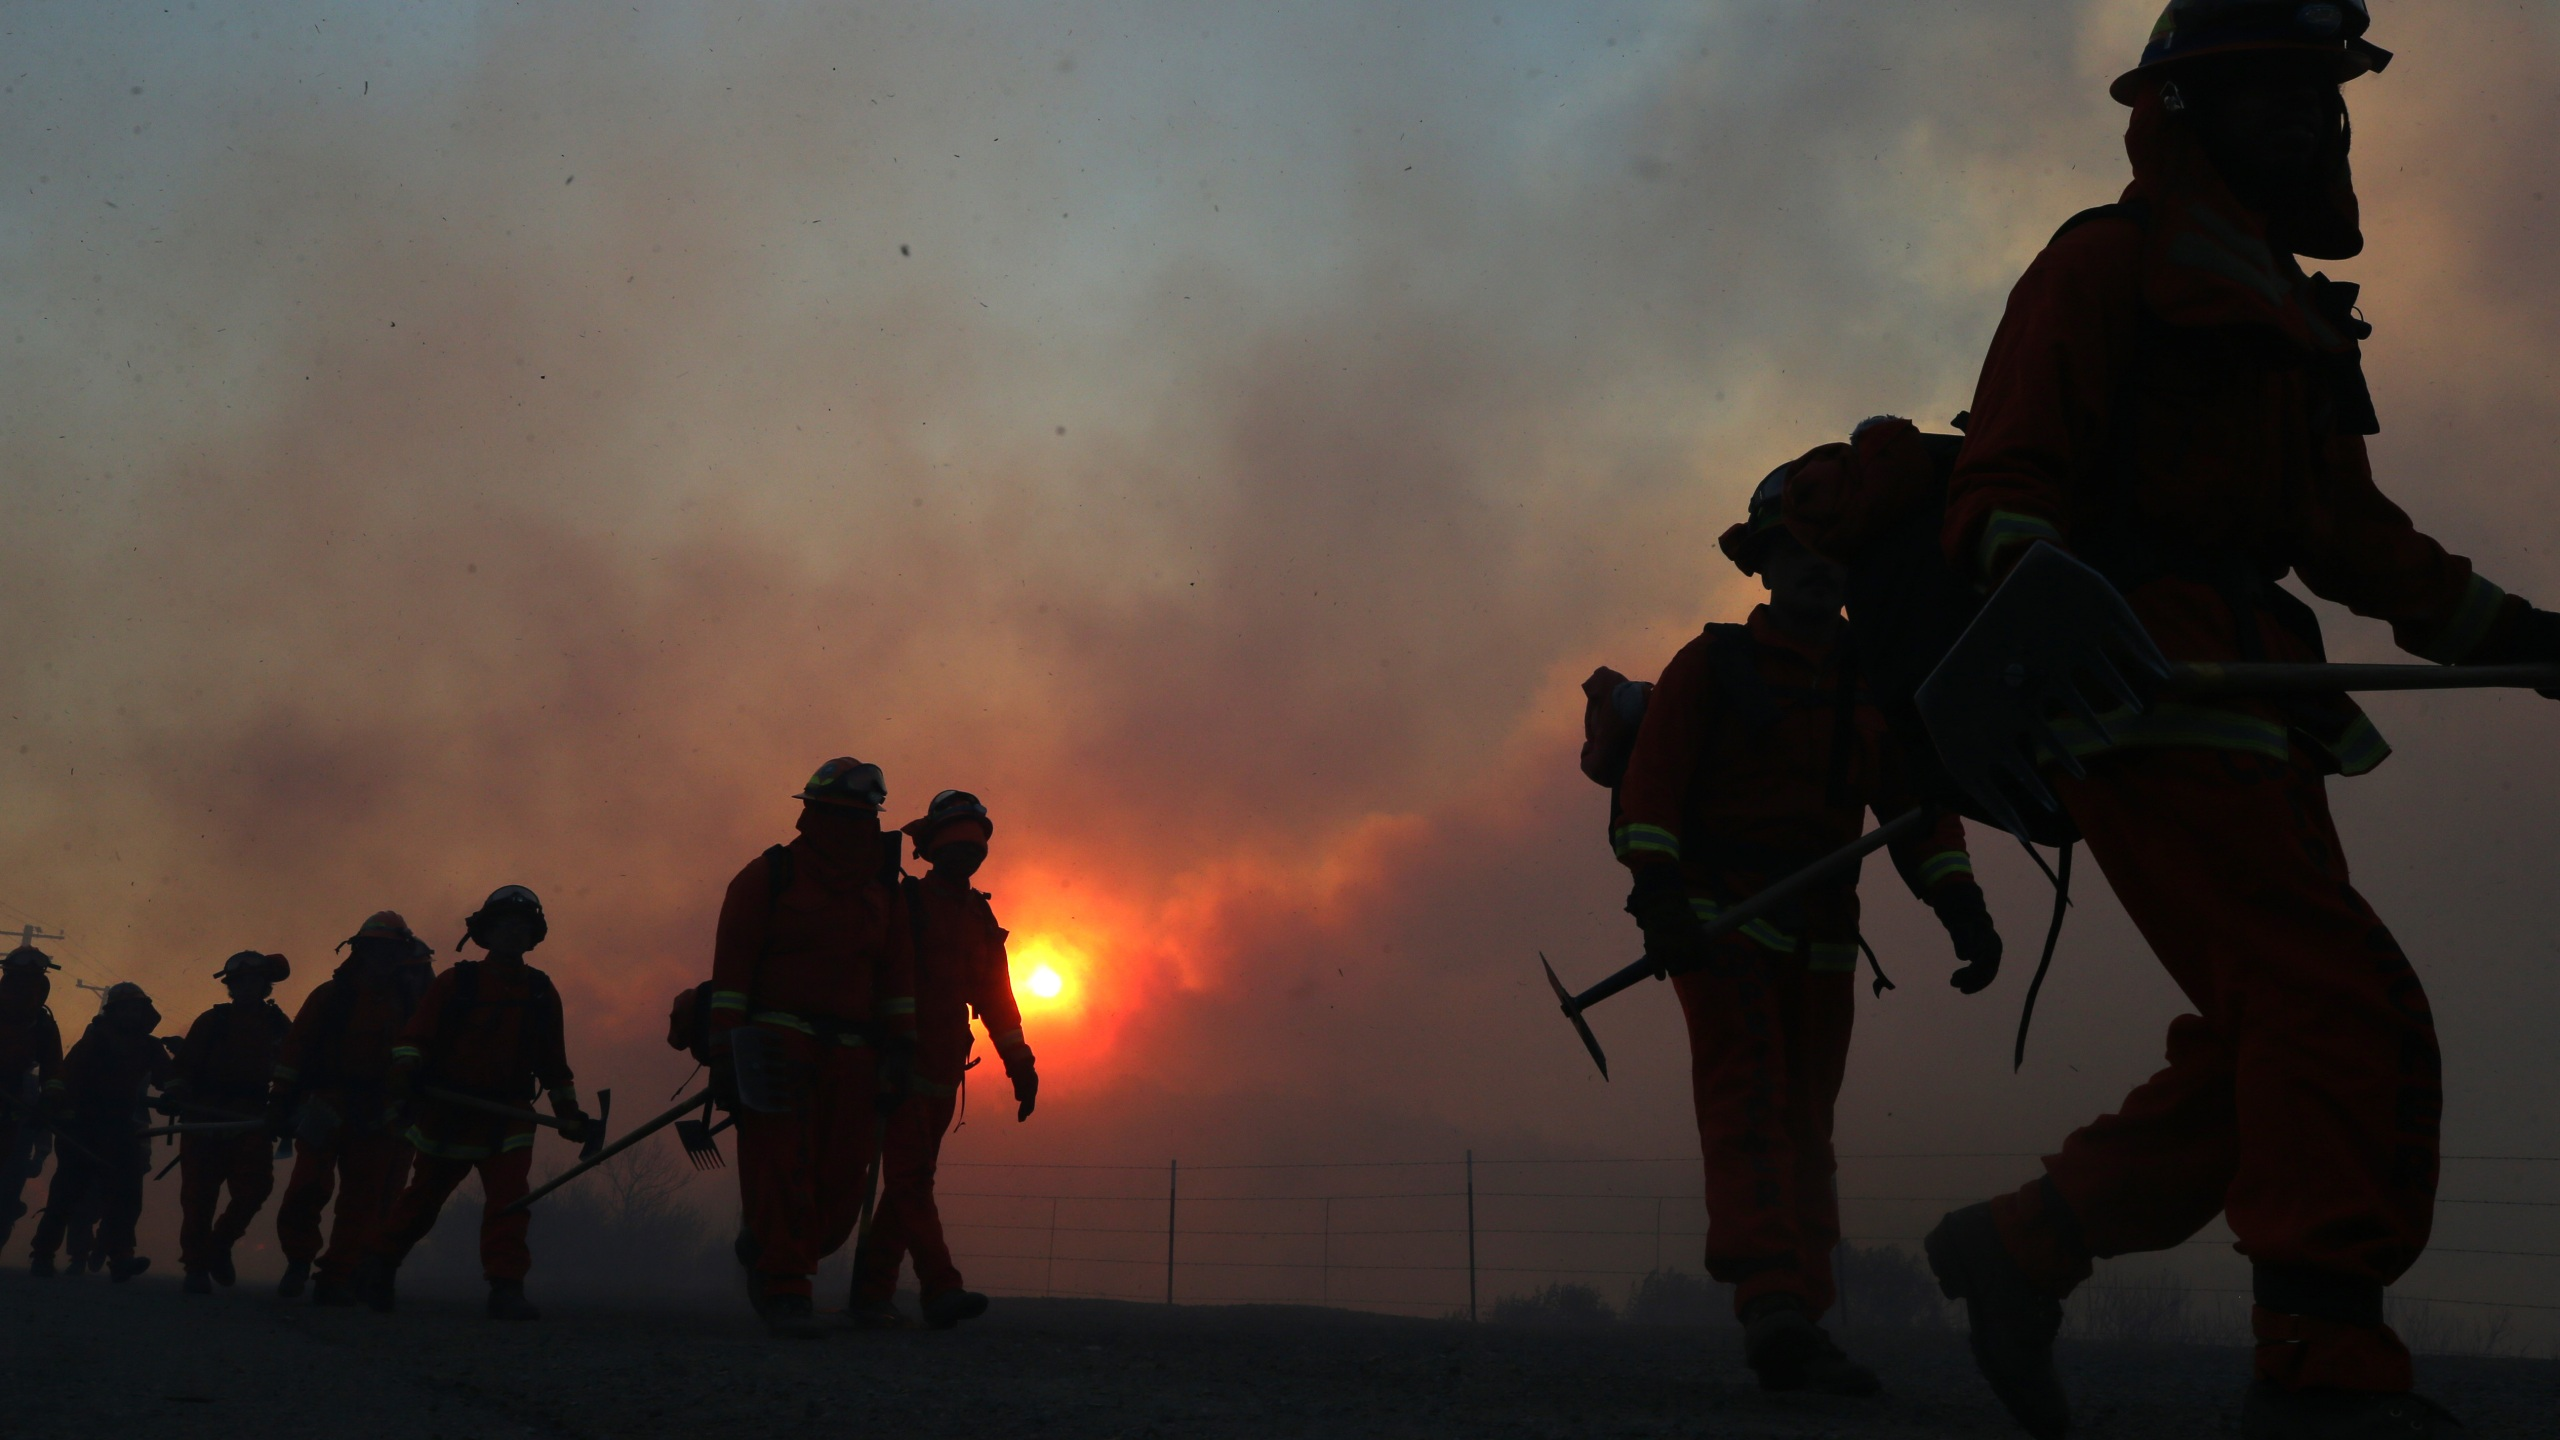 Inmate firefighters work as the Bond Fire burns shortly after sunrise in the Silverado Canyon area of Orange County on December 3, 2020 near Irvine, California. (Photo by Mario Tama/Getty Images)